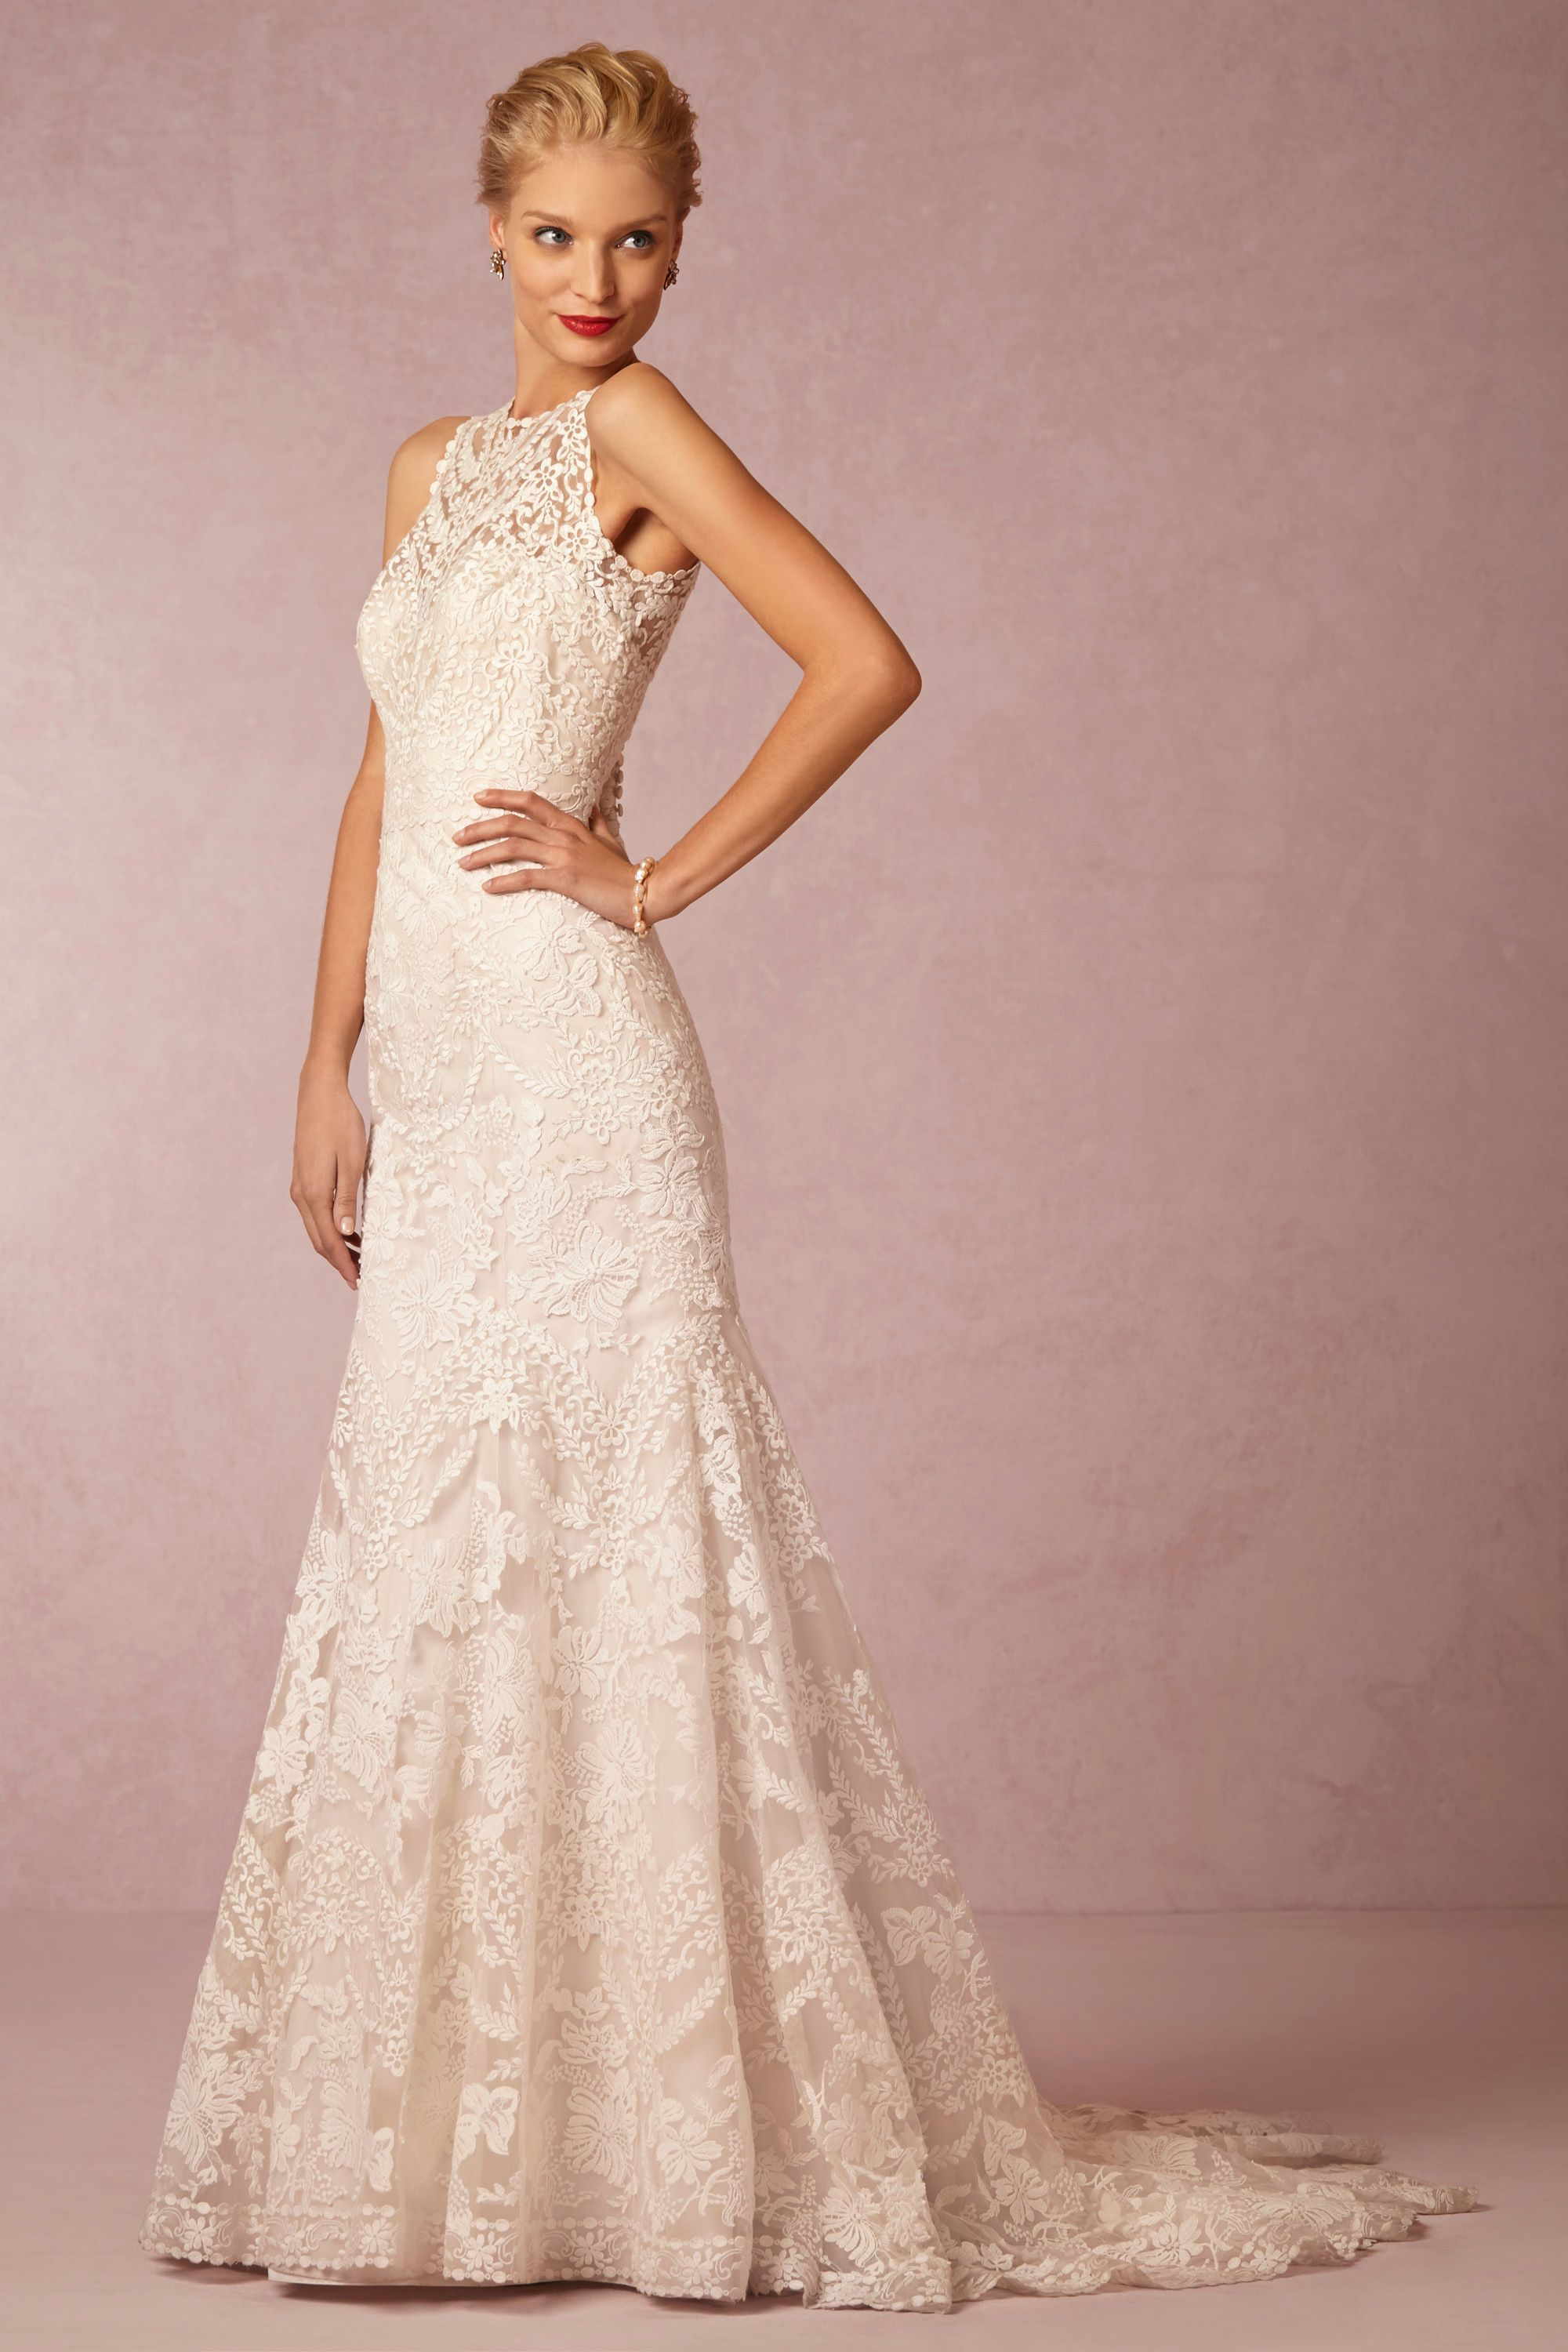 This ivory lace dress would have been perfect for my victorian